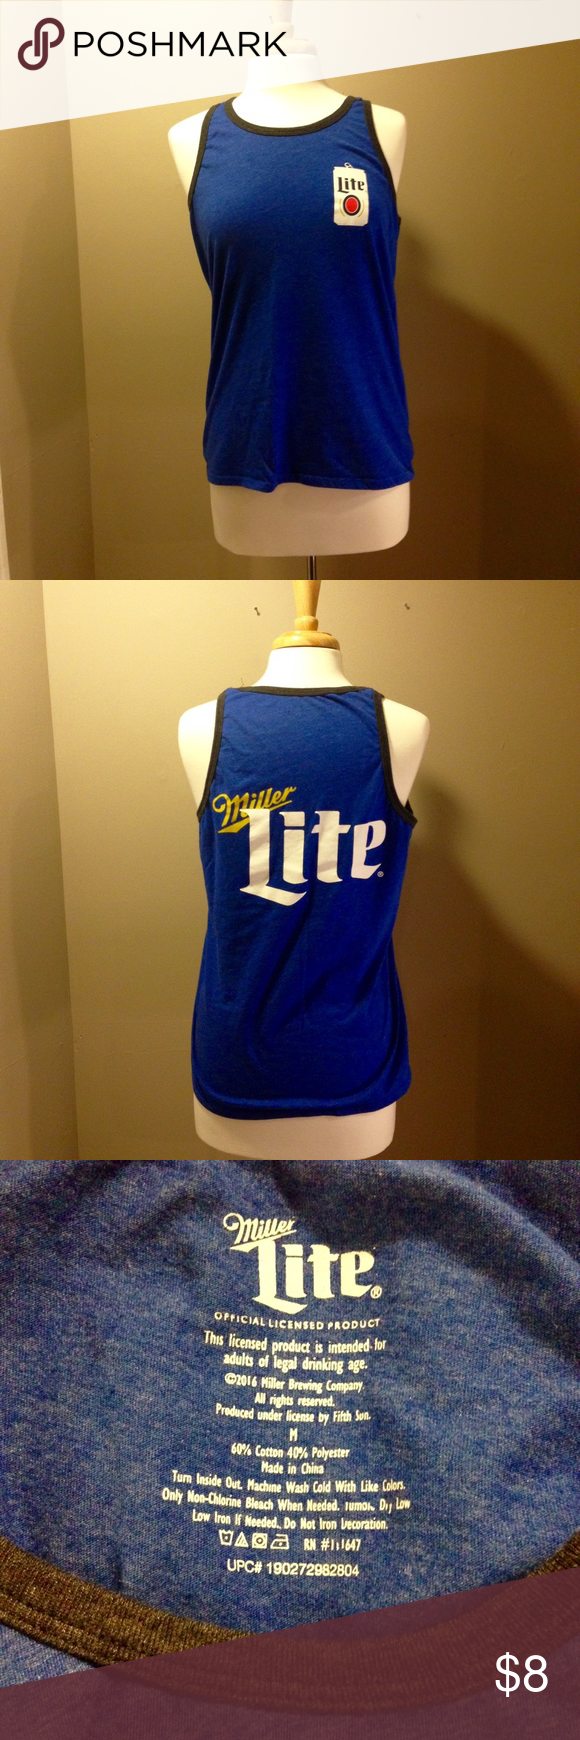 4ab75d5547234 🍻Miller Lite tank top Medium